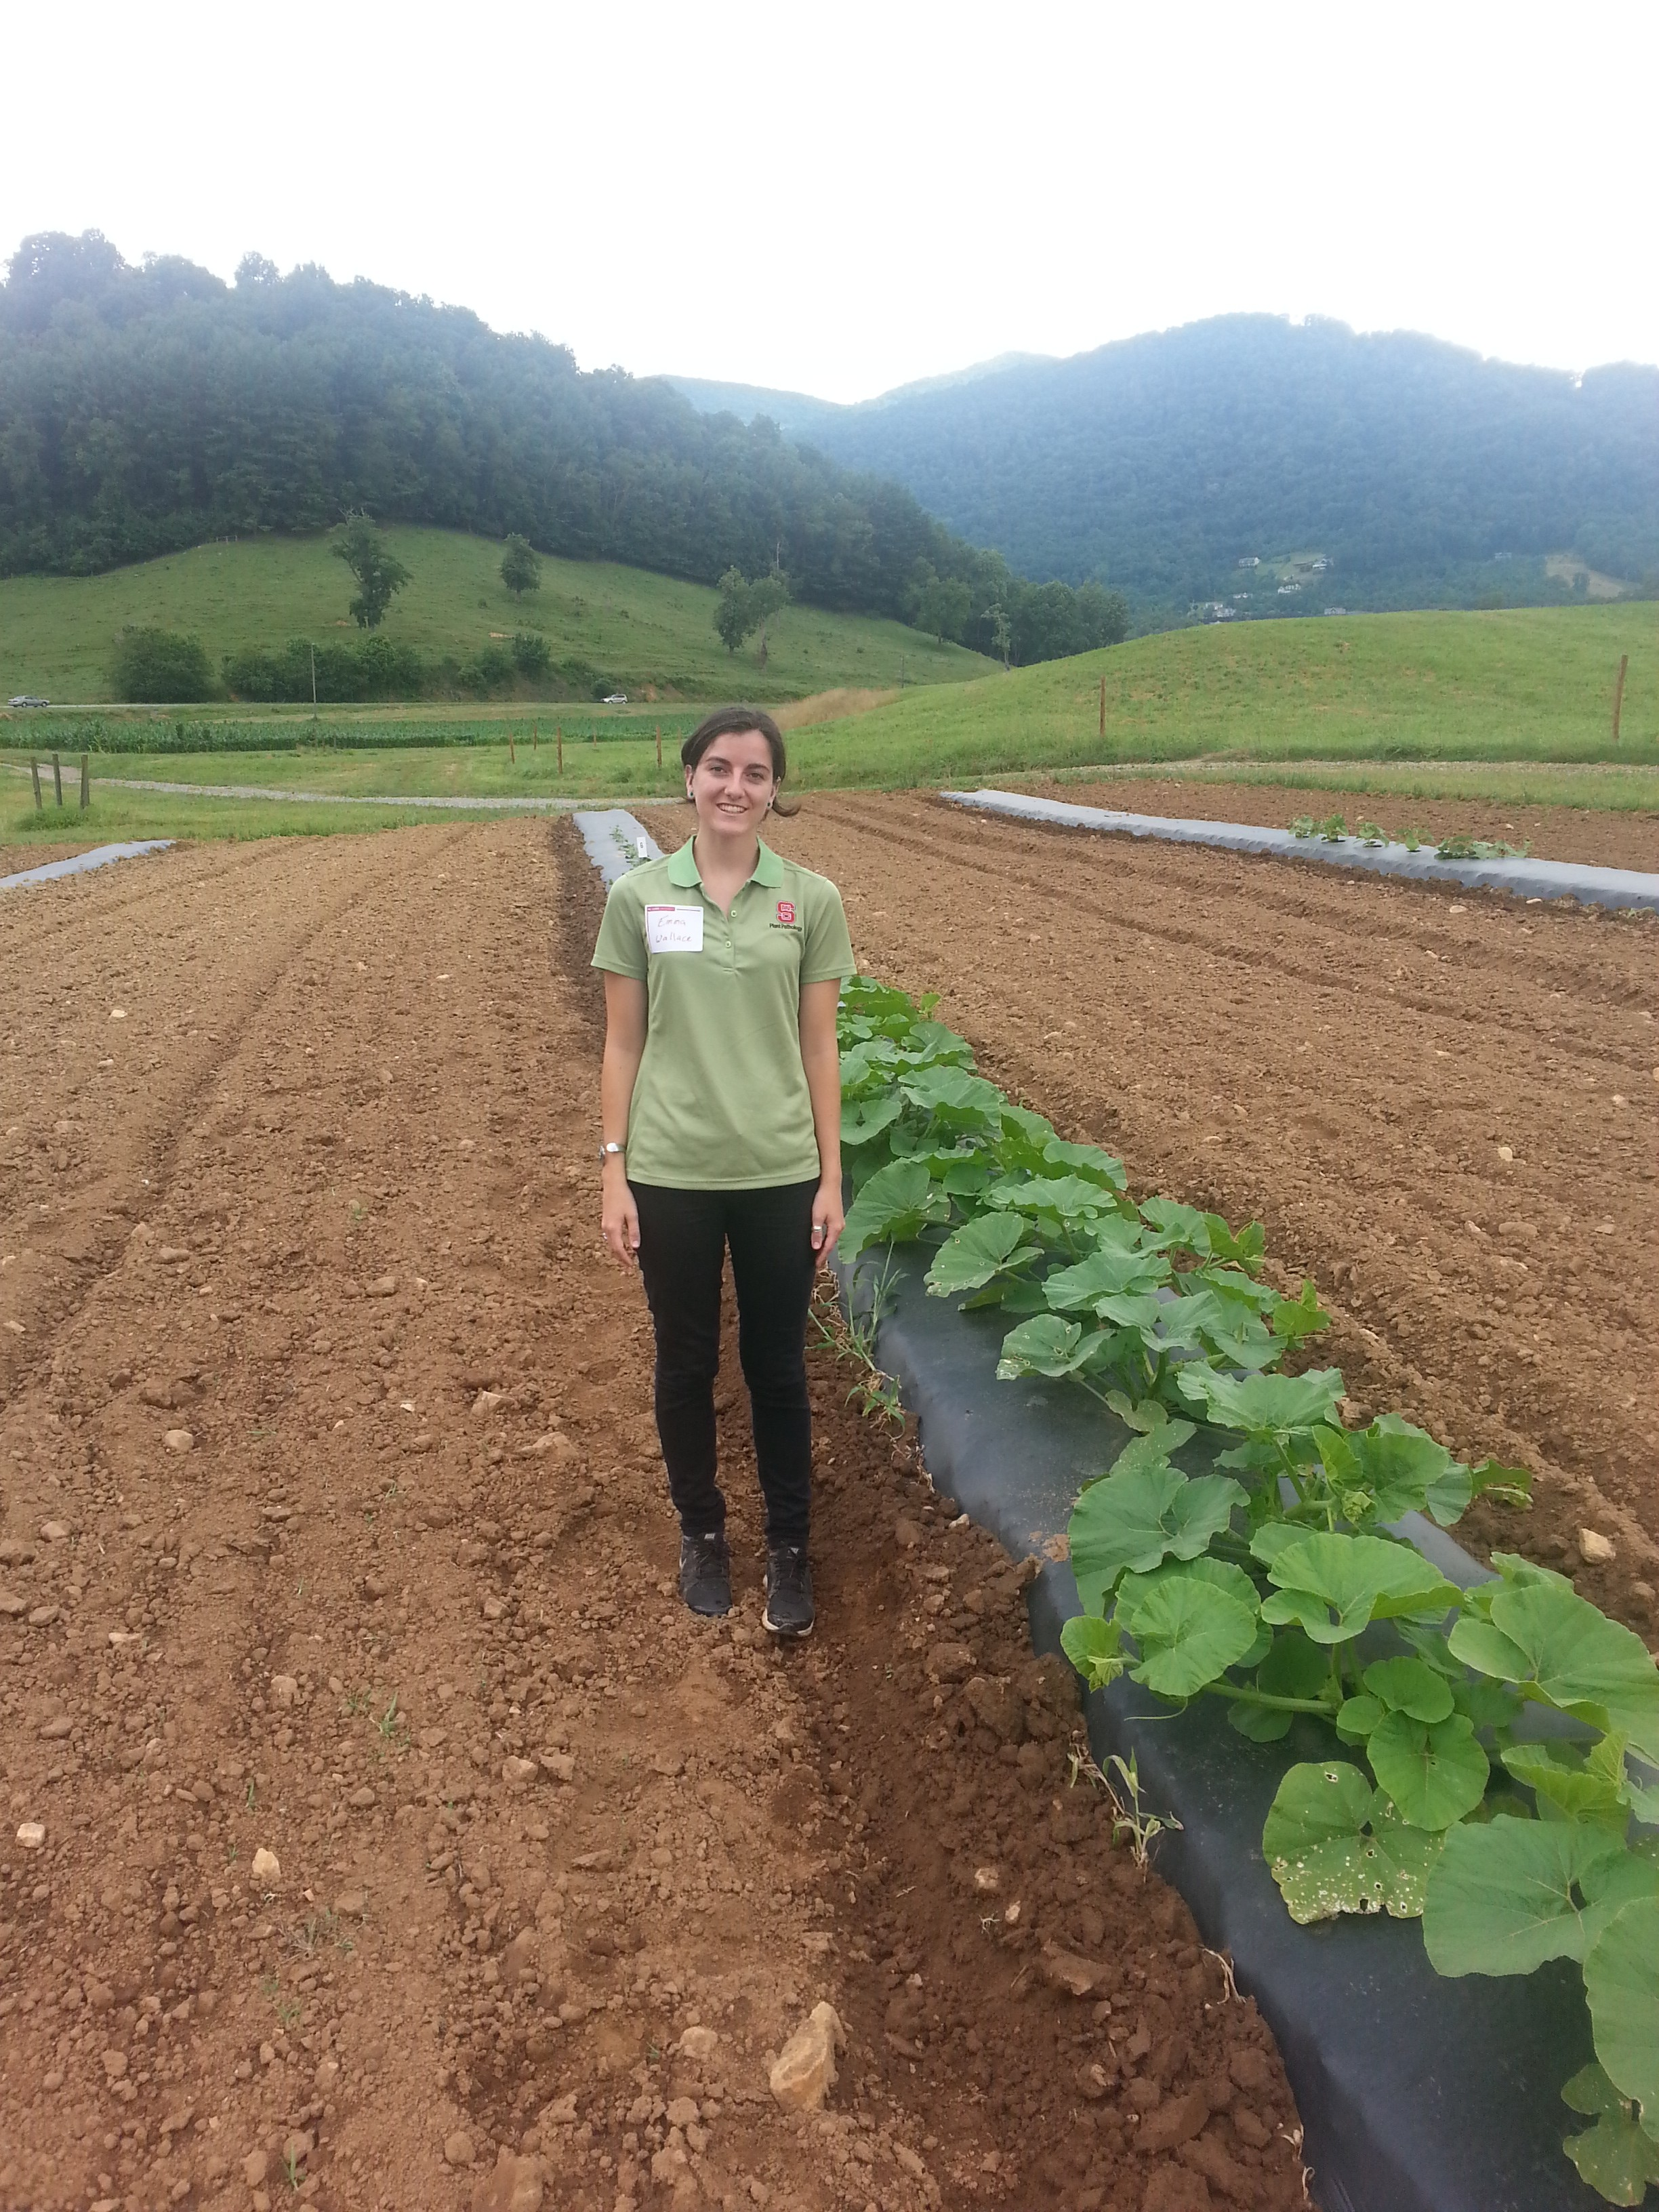 Emma Wallace from the NCSU Vegetable Pathology Lab in the Mountain Research Station Sentinel Plot